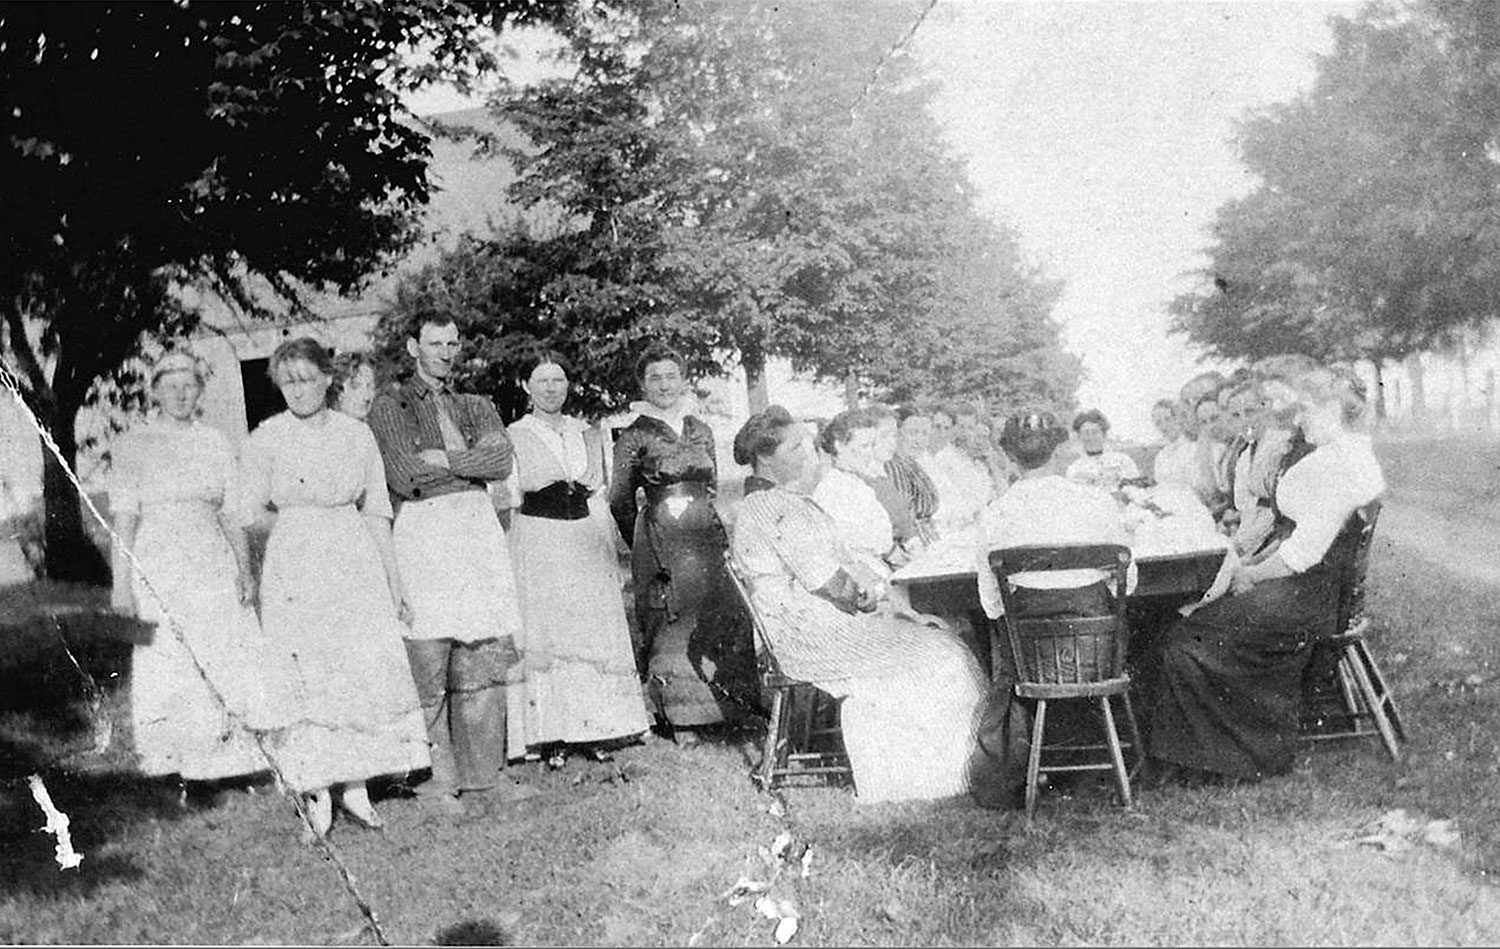 Feast after a quilting bee at Mrs. Burts, Erin Township, 1915. (Ph 10312, Wellington County Museum and Archives)